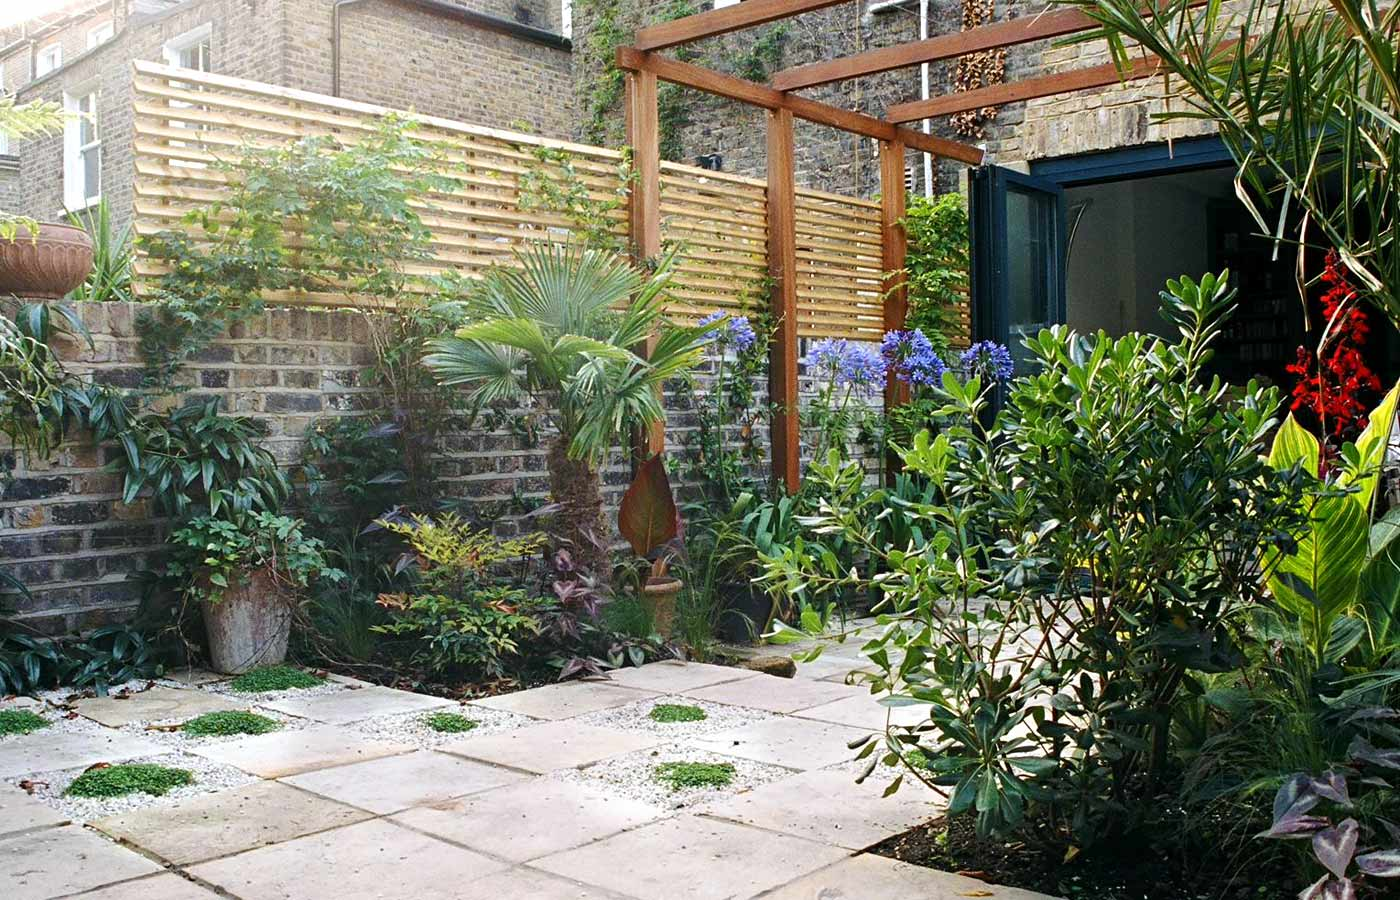 Courtyard garden design north london garden design for Courtyard garden ideas